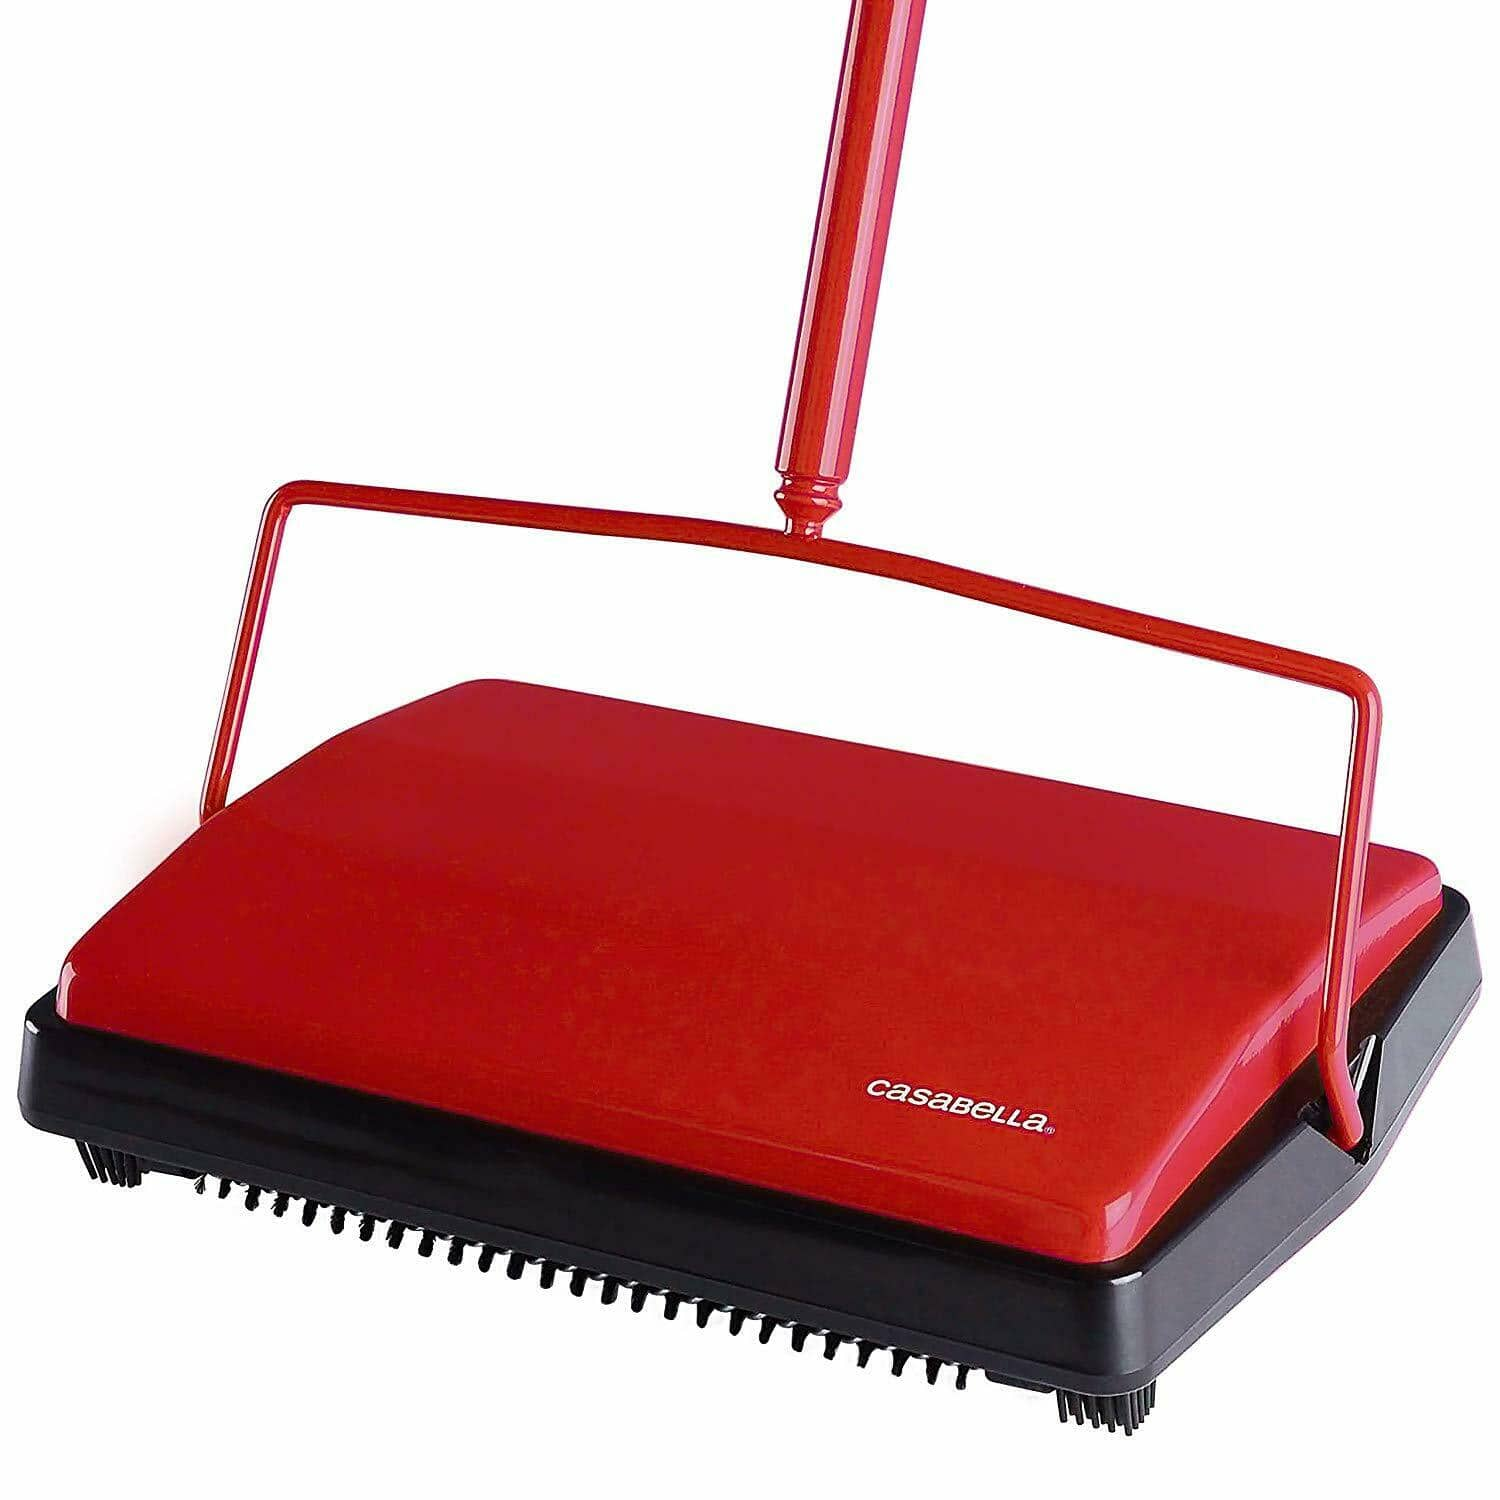 Casabella Lightweight Electrostatic Carpet Sweeper - 11 Inch for $13.99 + Free S&H